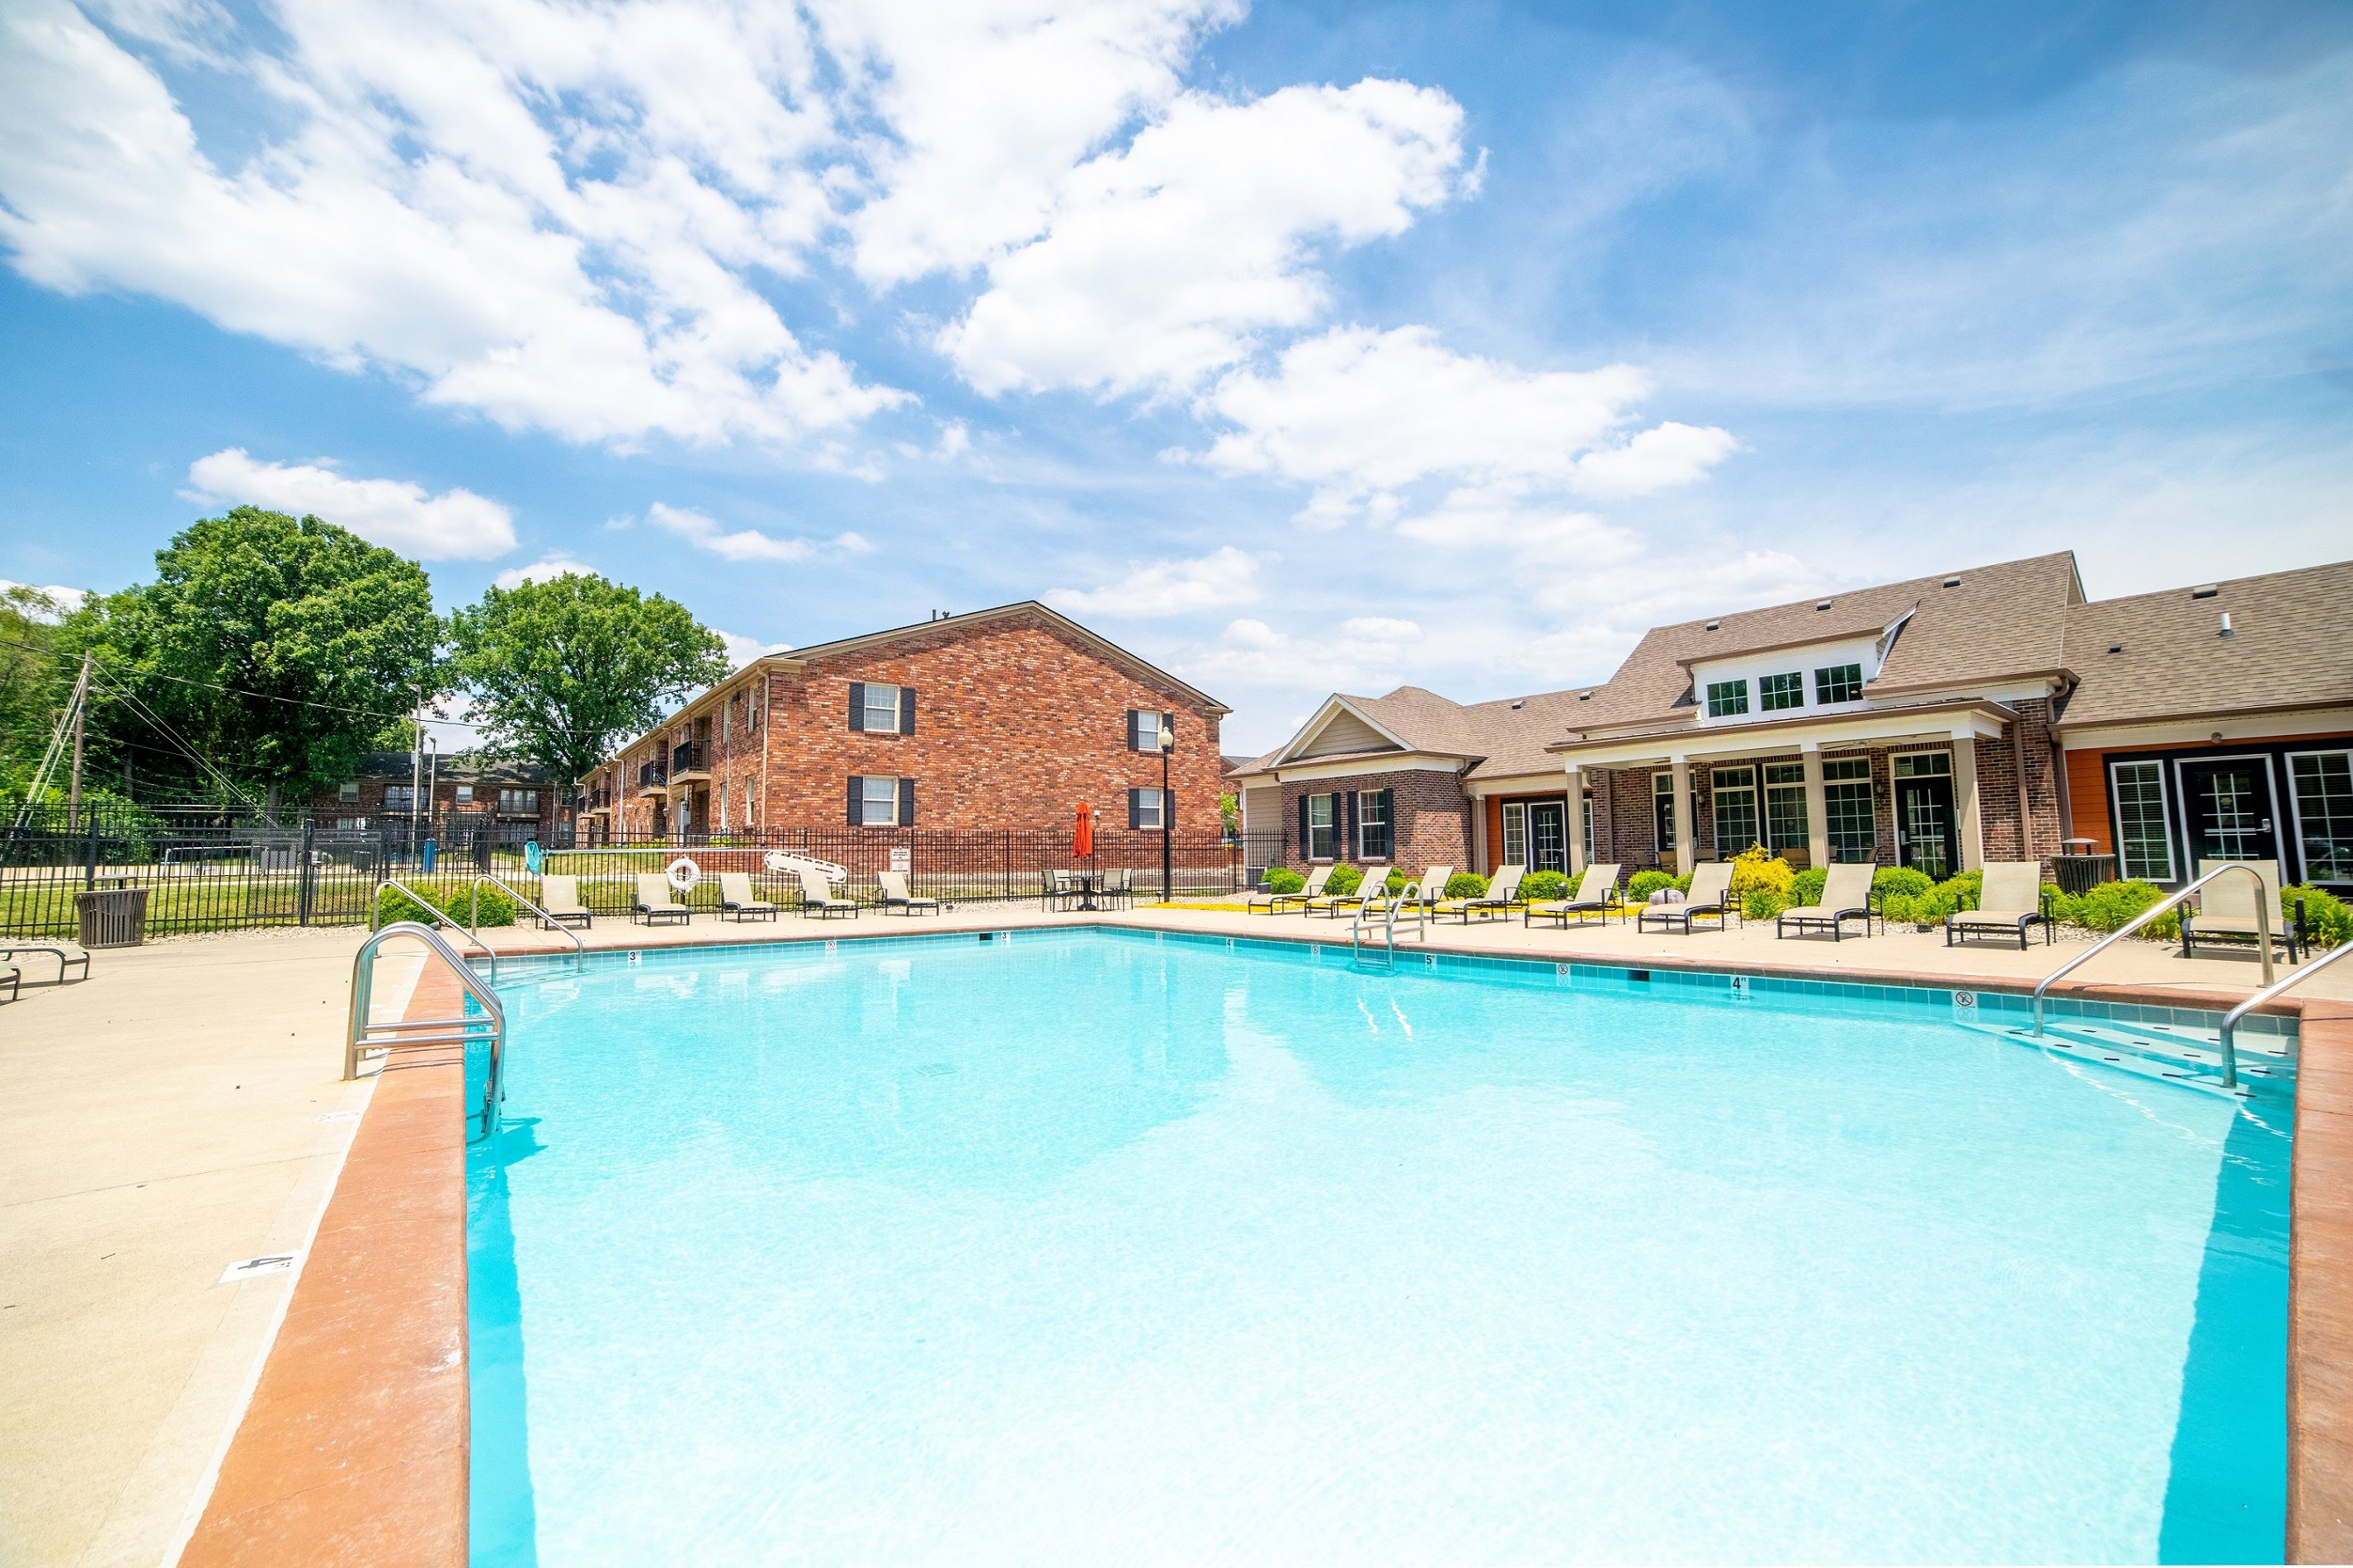 Crystal Clear Swimming Pool at Buckingham Monon Living, Indianapolis, IN